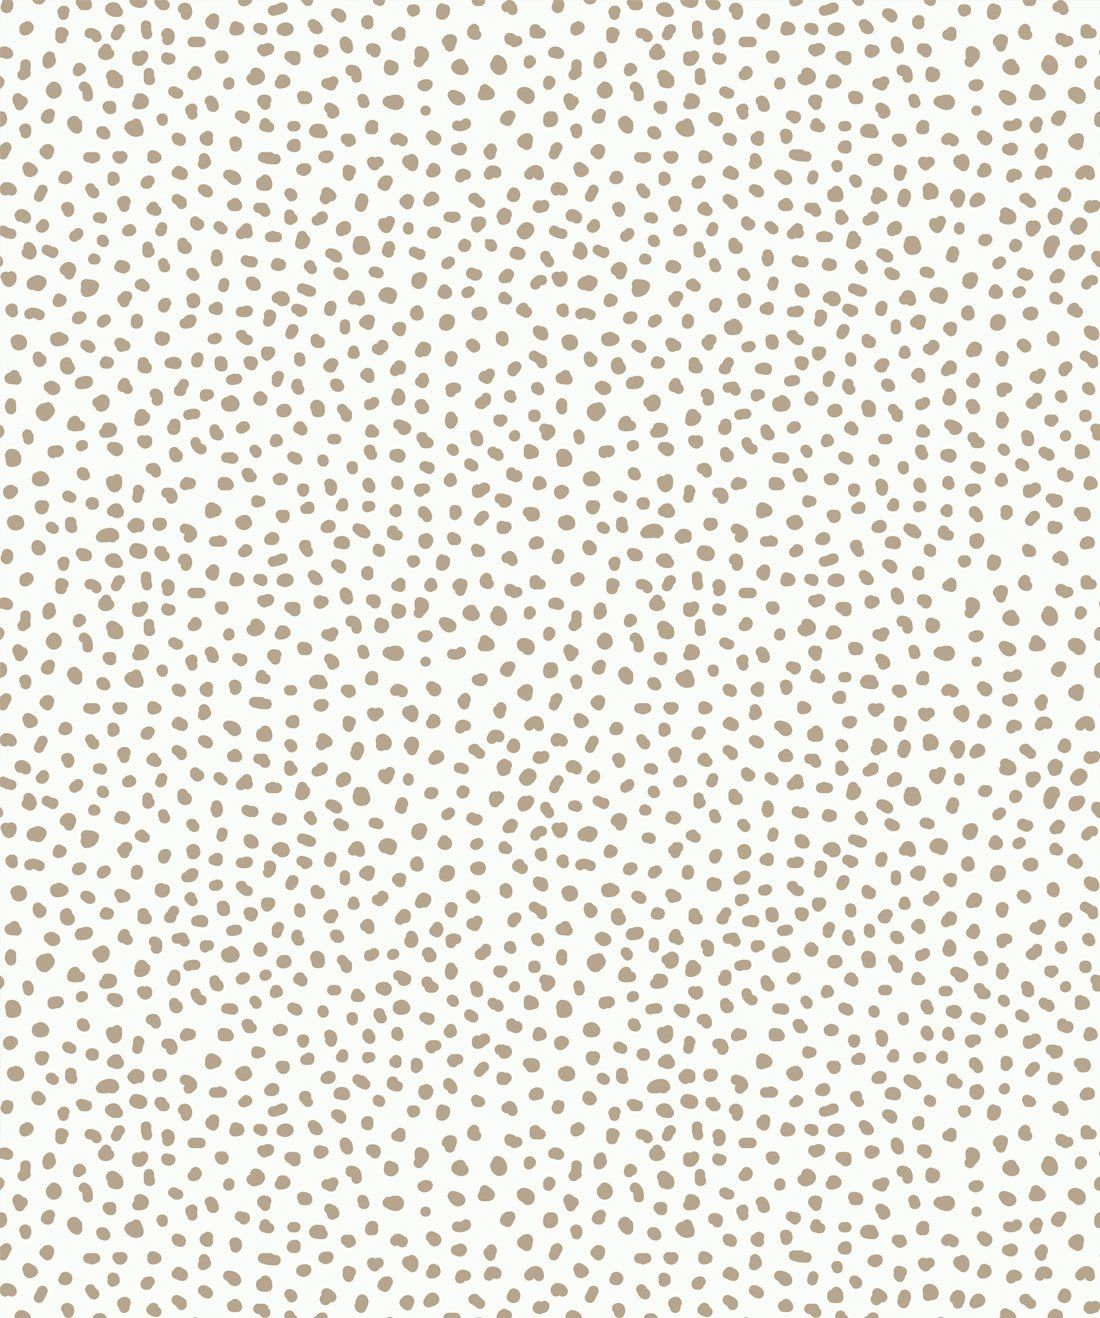 Sample Huddy€™s Dots Wallpaper in Taupe from the Wallpaper Republic Collection by Milton & King